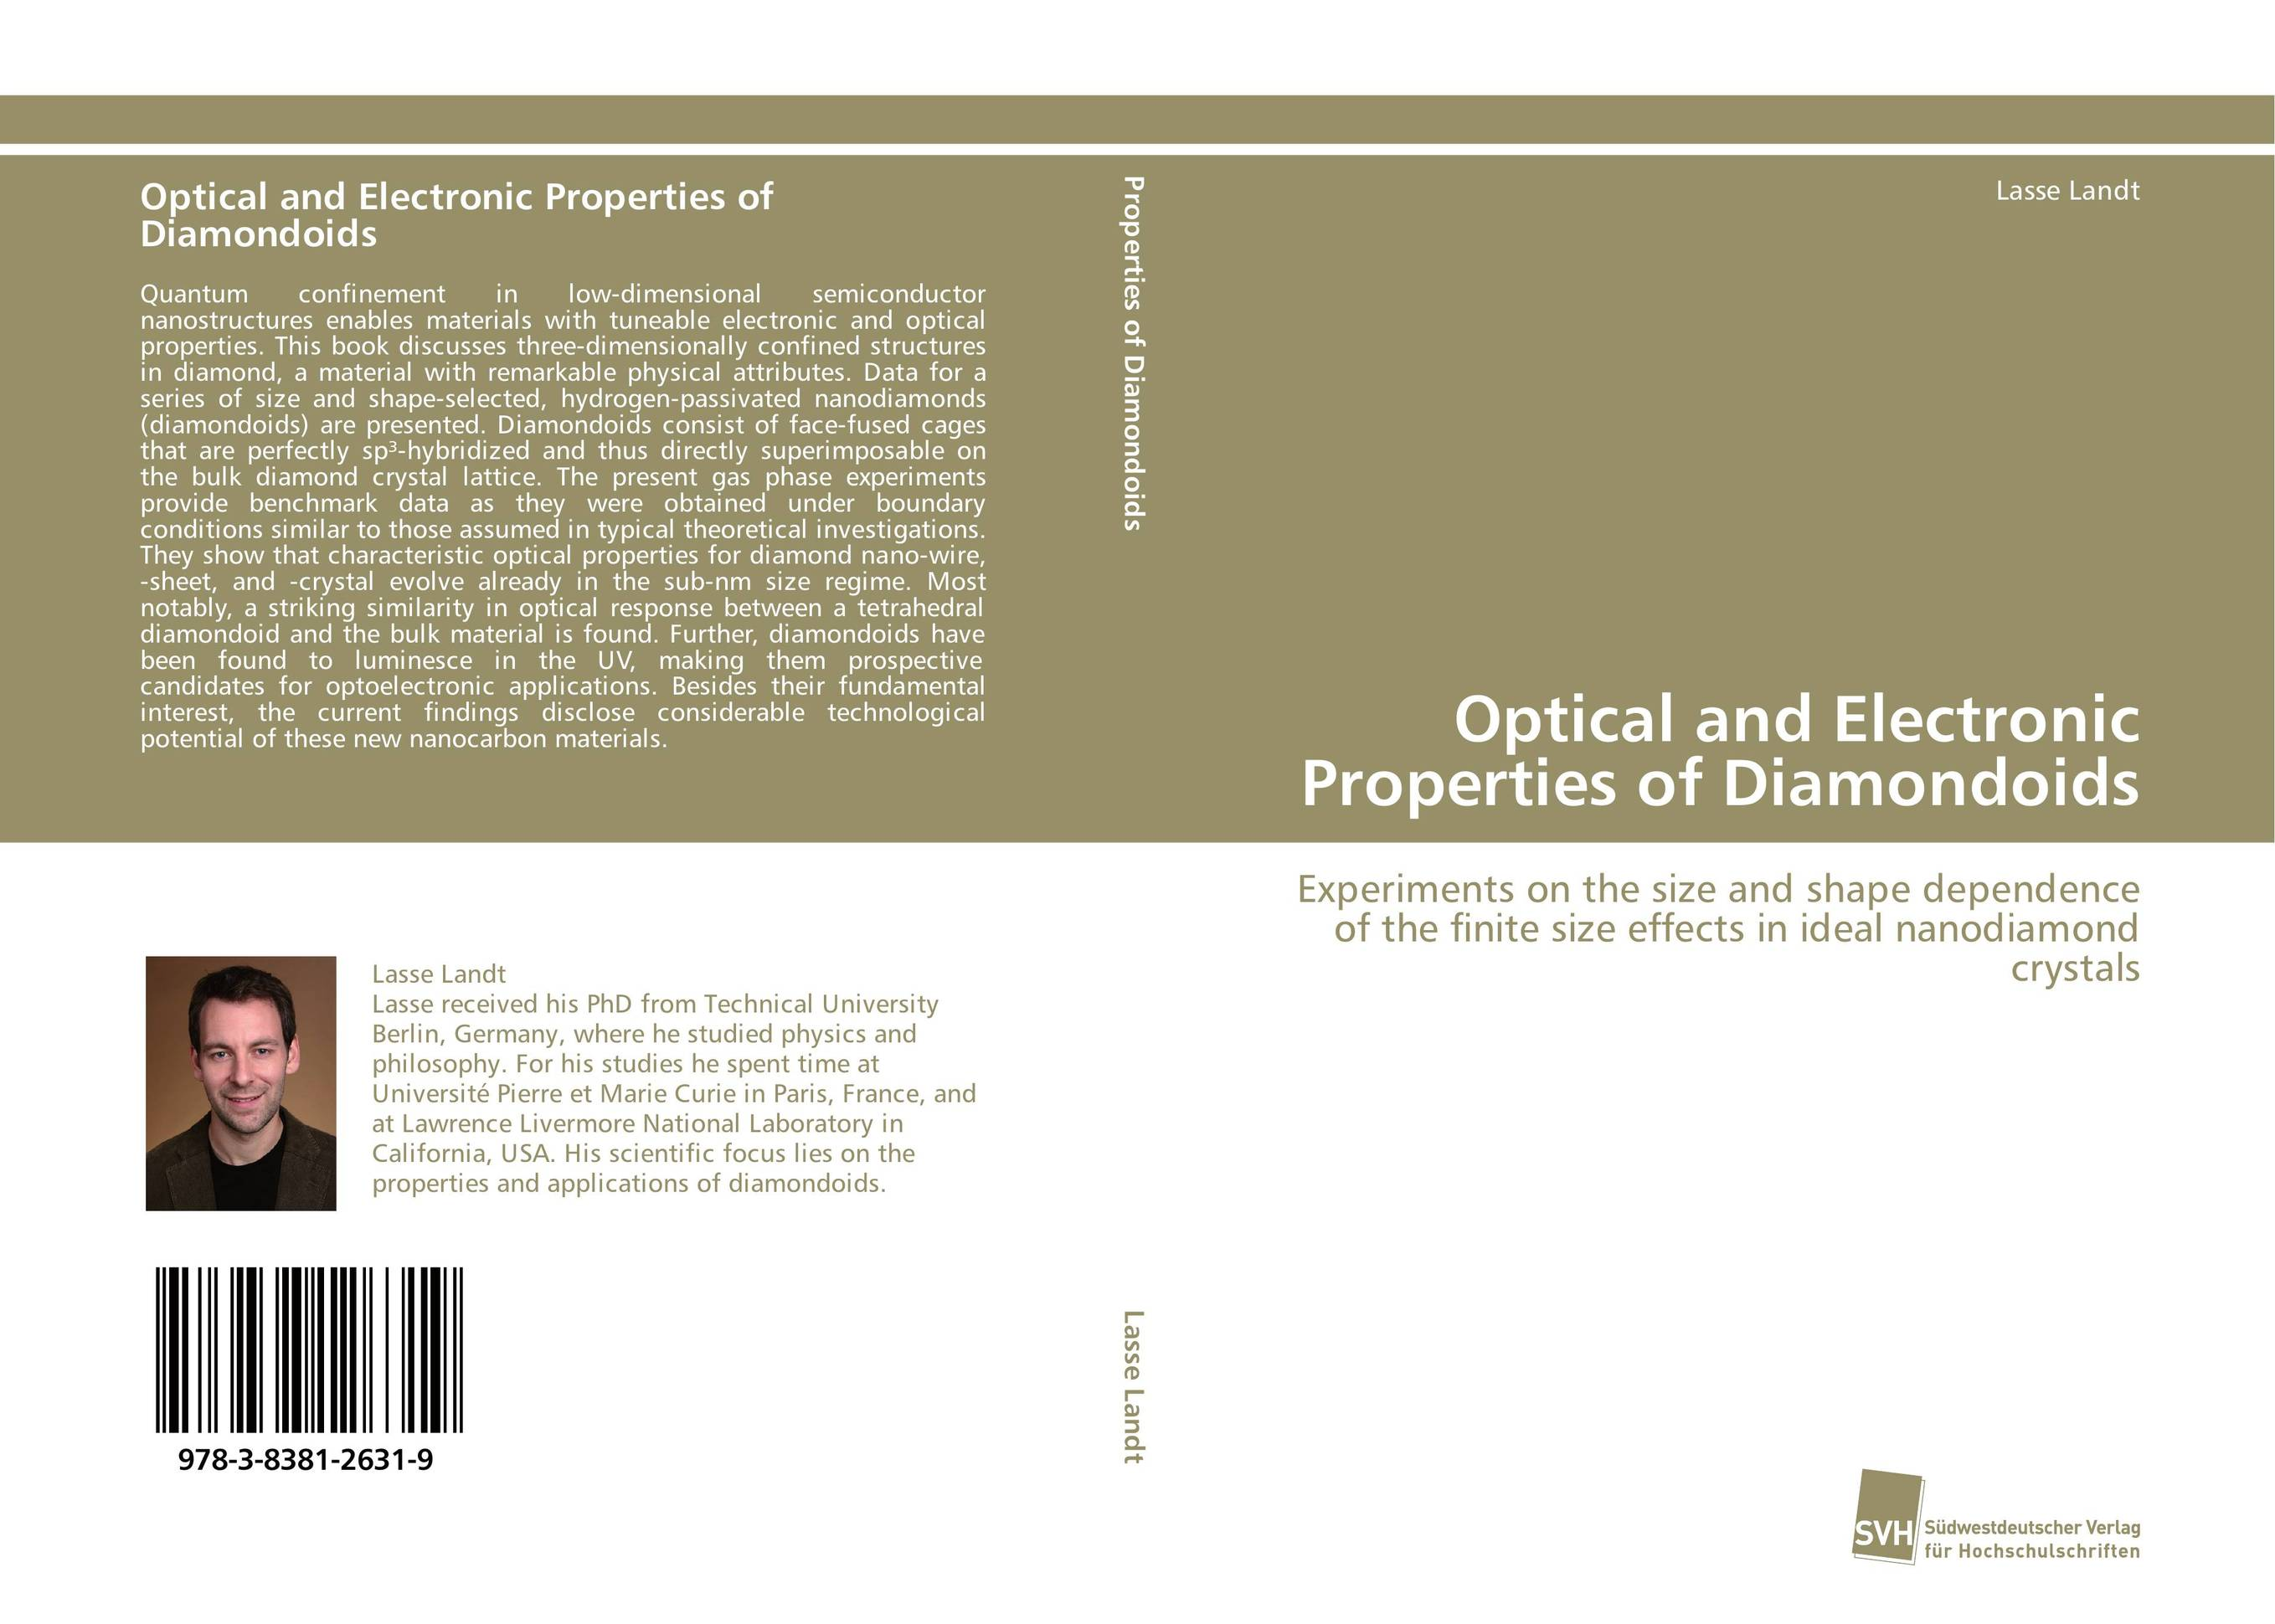 Optical and Electronic Properties of Diamondoids optical and electronic properties of diamondoids